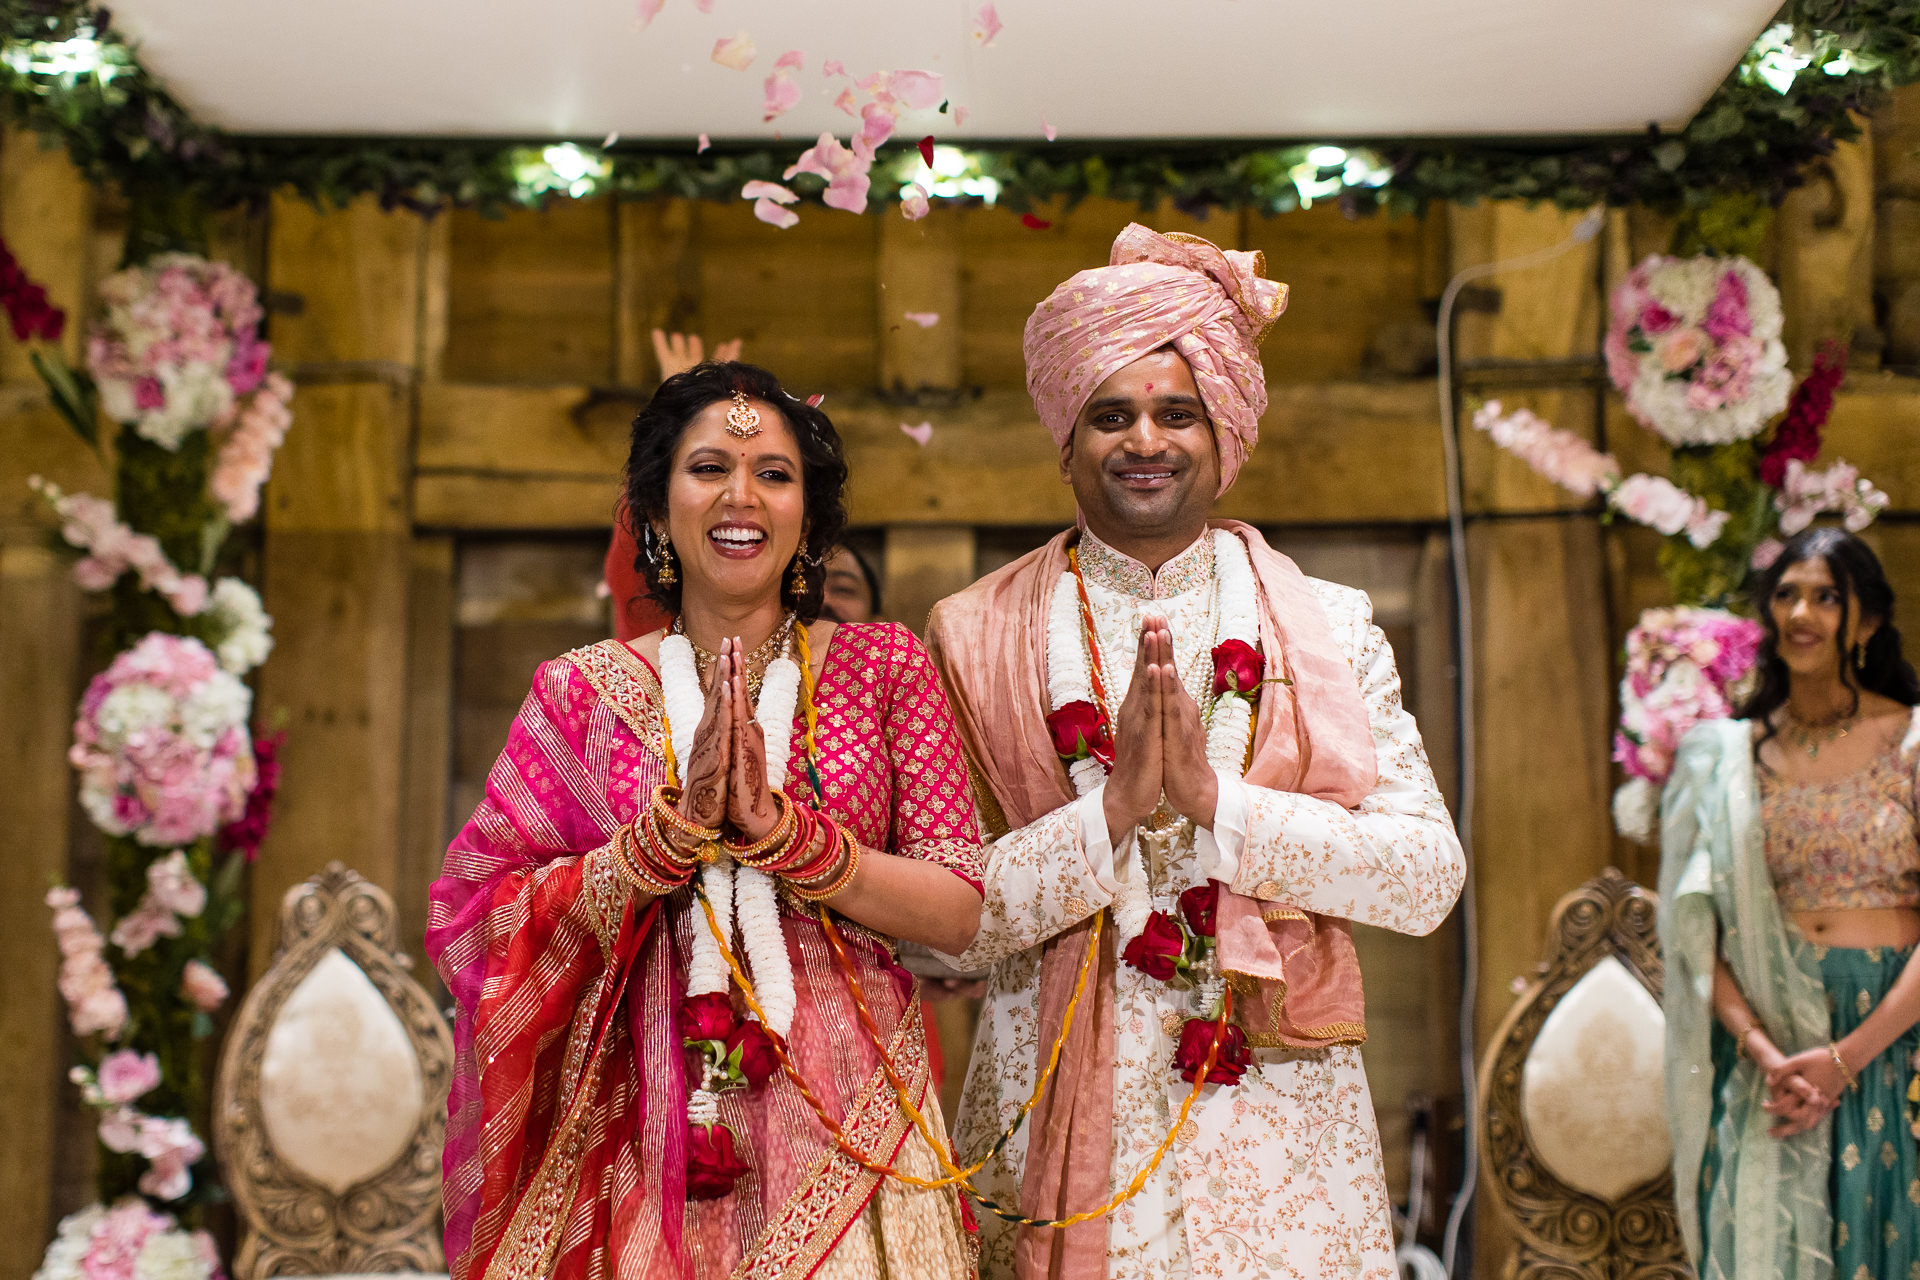 Asian Bride and Groom laughing